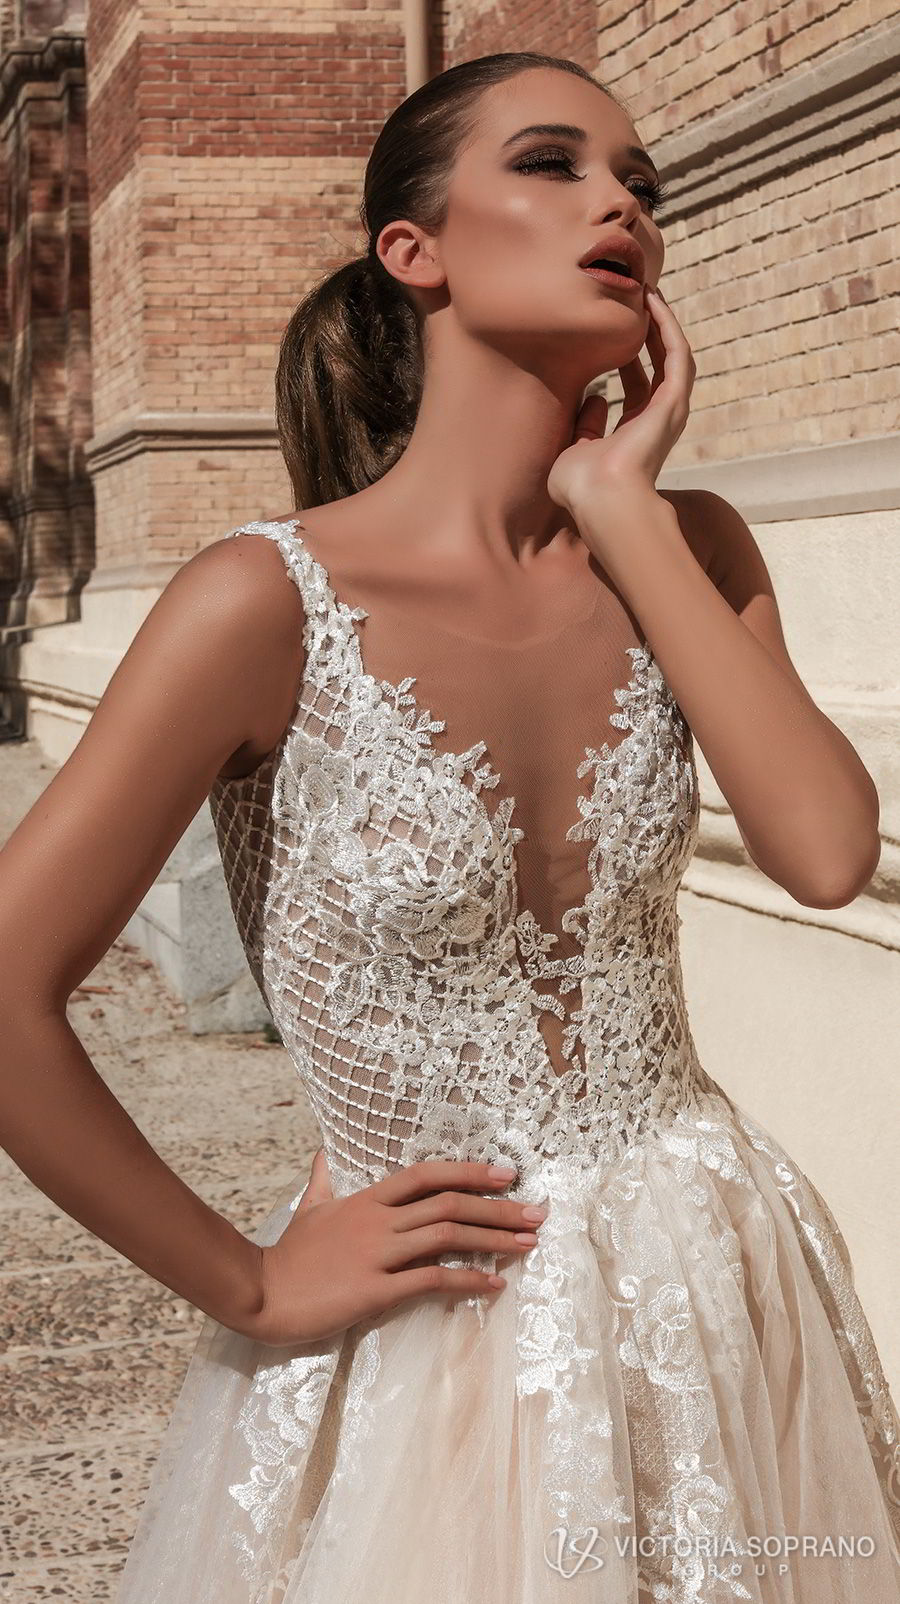 victoria soprano 2018 bridal sleeveless deep plunging v neck heavily embellished bodice romantic sexy champagne color a line wedding dress open v back chapel train (bella) zv